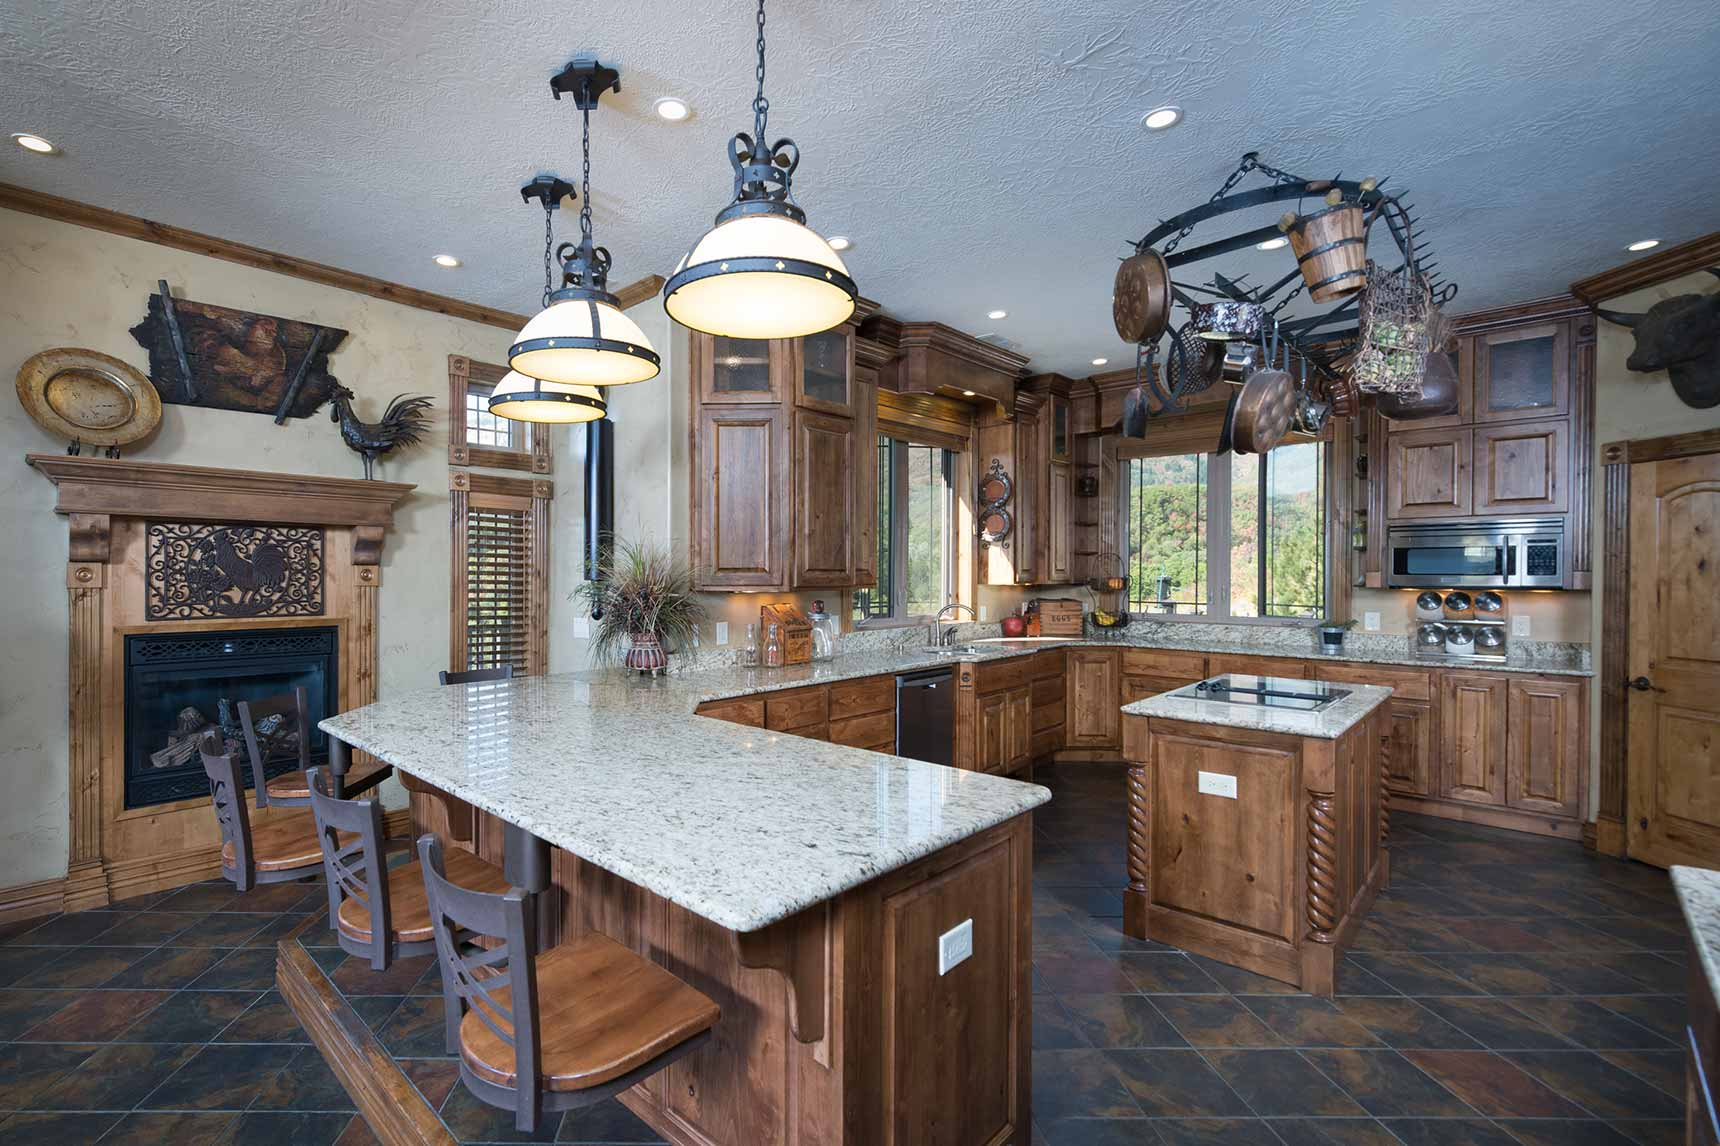 /6422-North-Fork-Rd-Liberty-UT-84310 Kitchen